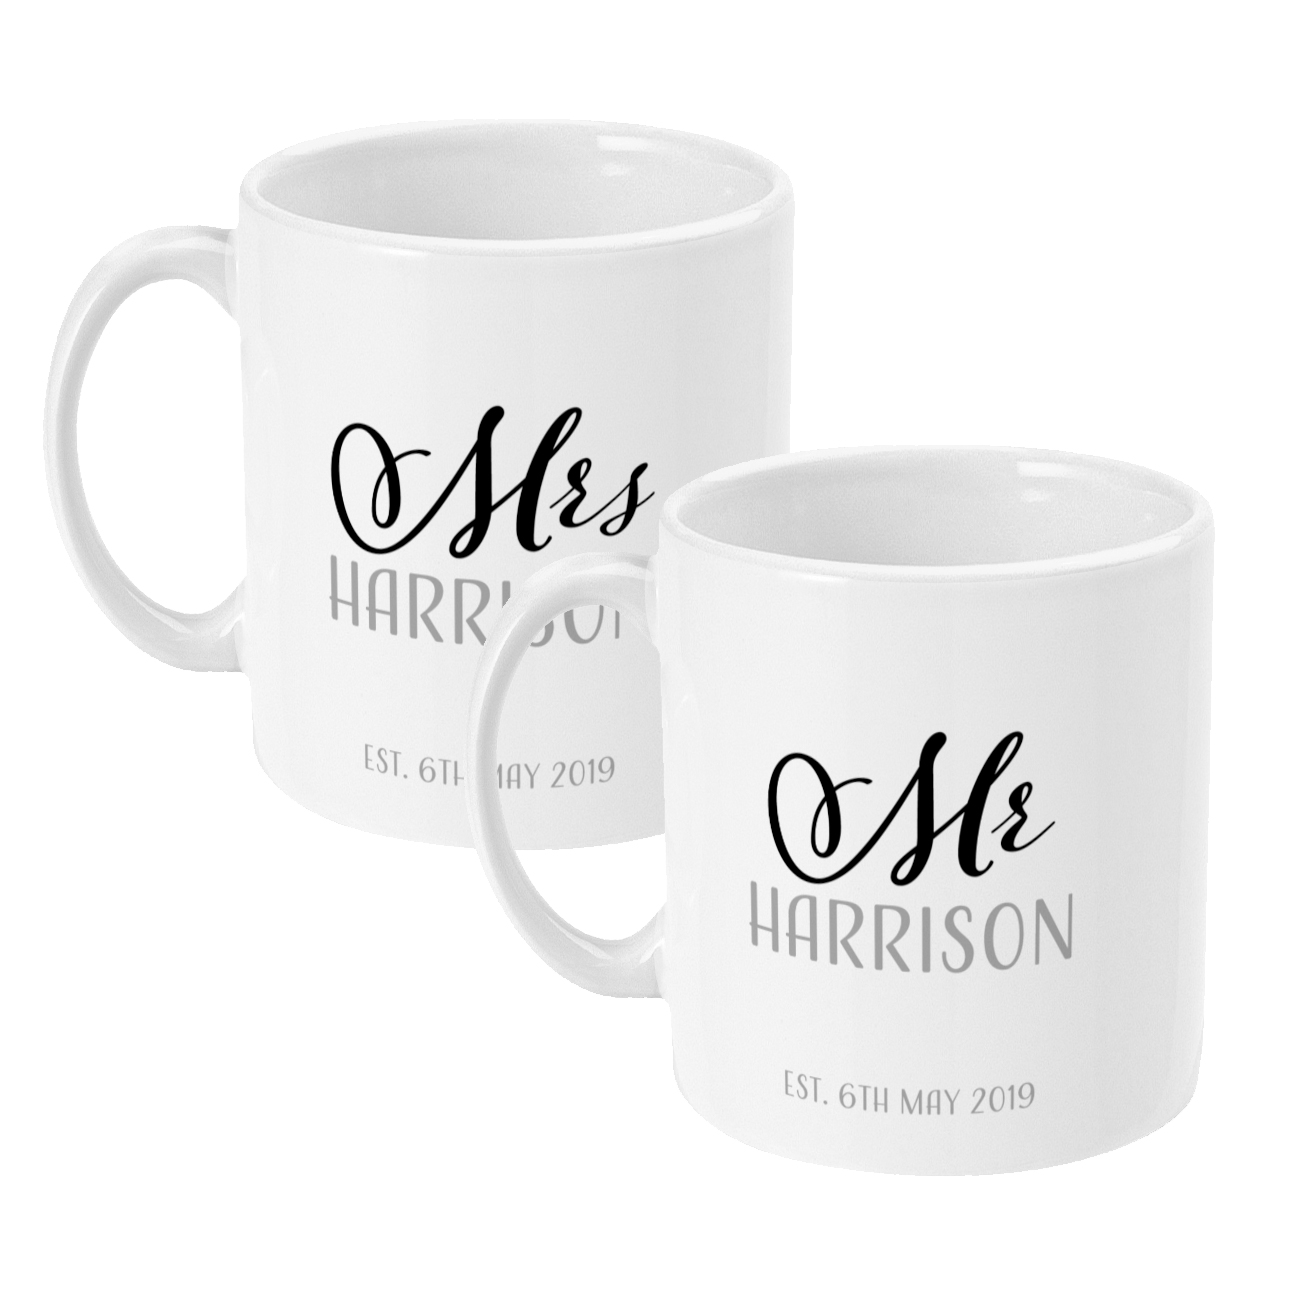 Personalised Two Pack of Couples Mugs 11oz Mr and Mr, Mr and Mrs, Mrs and Mrs